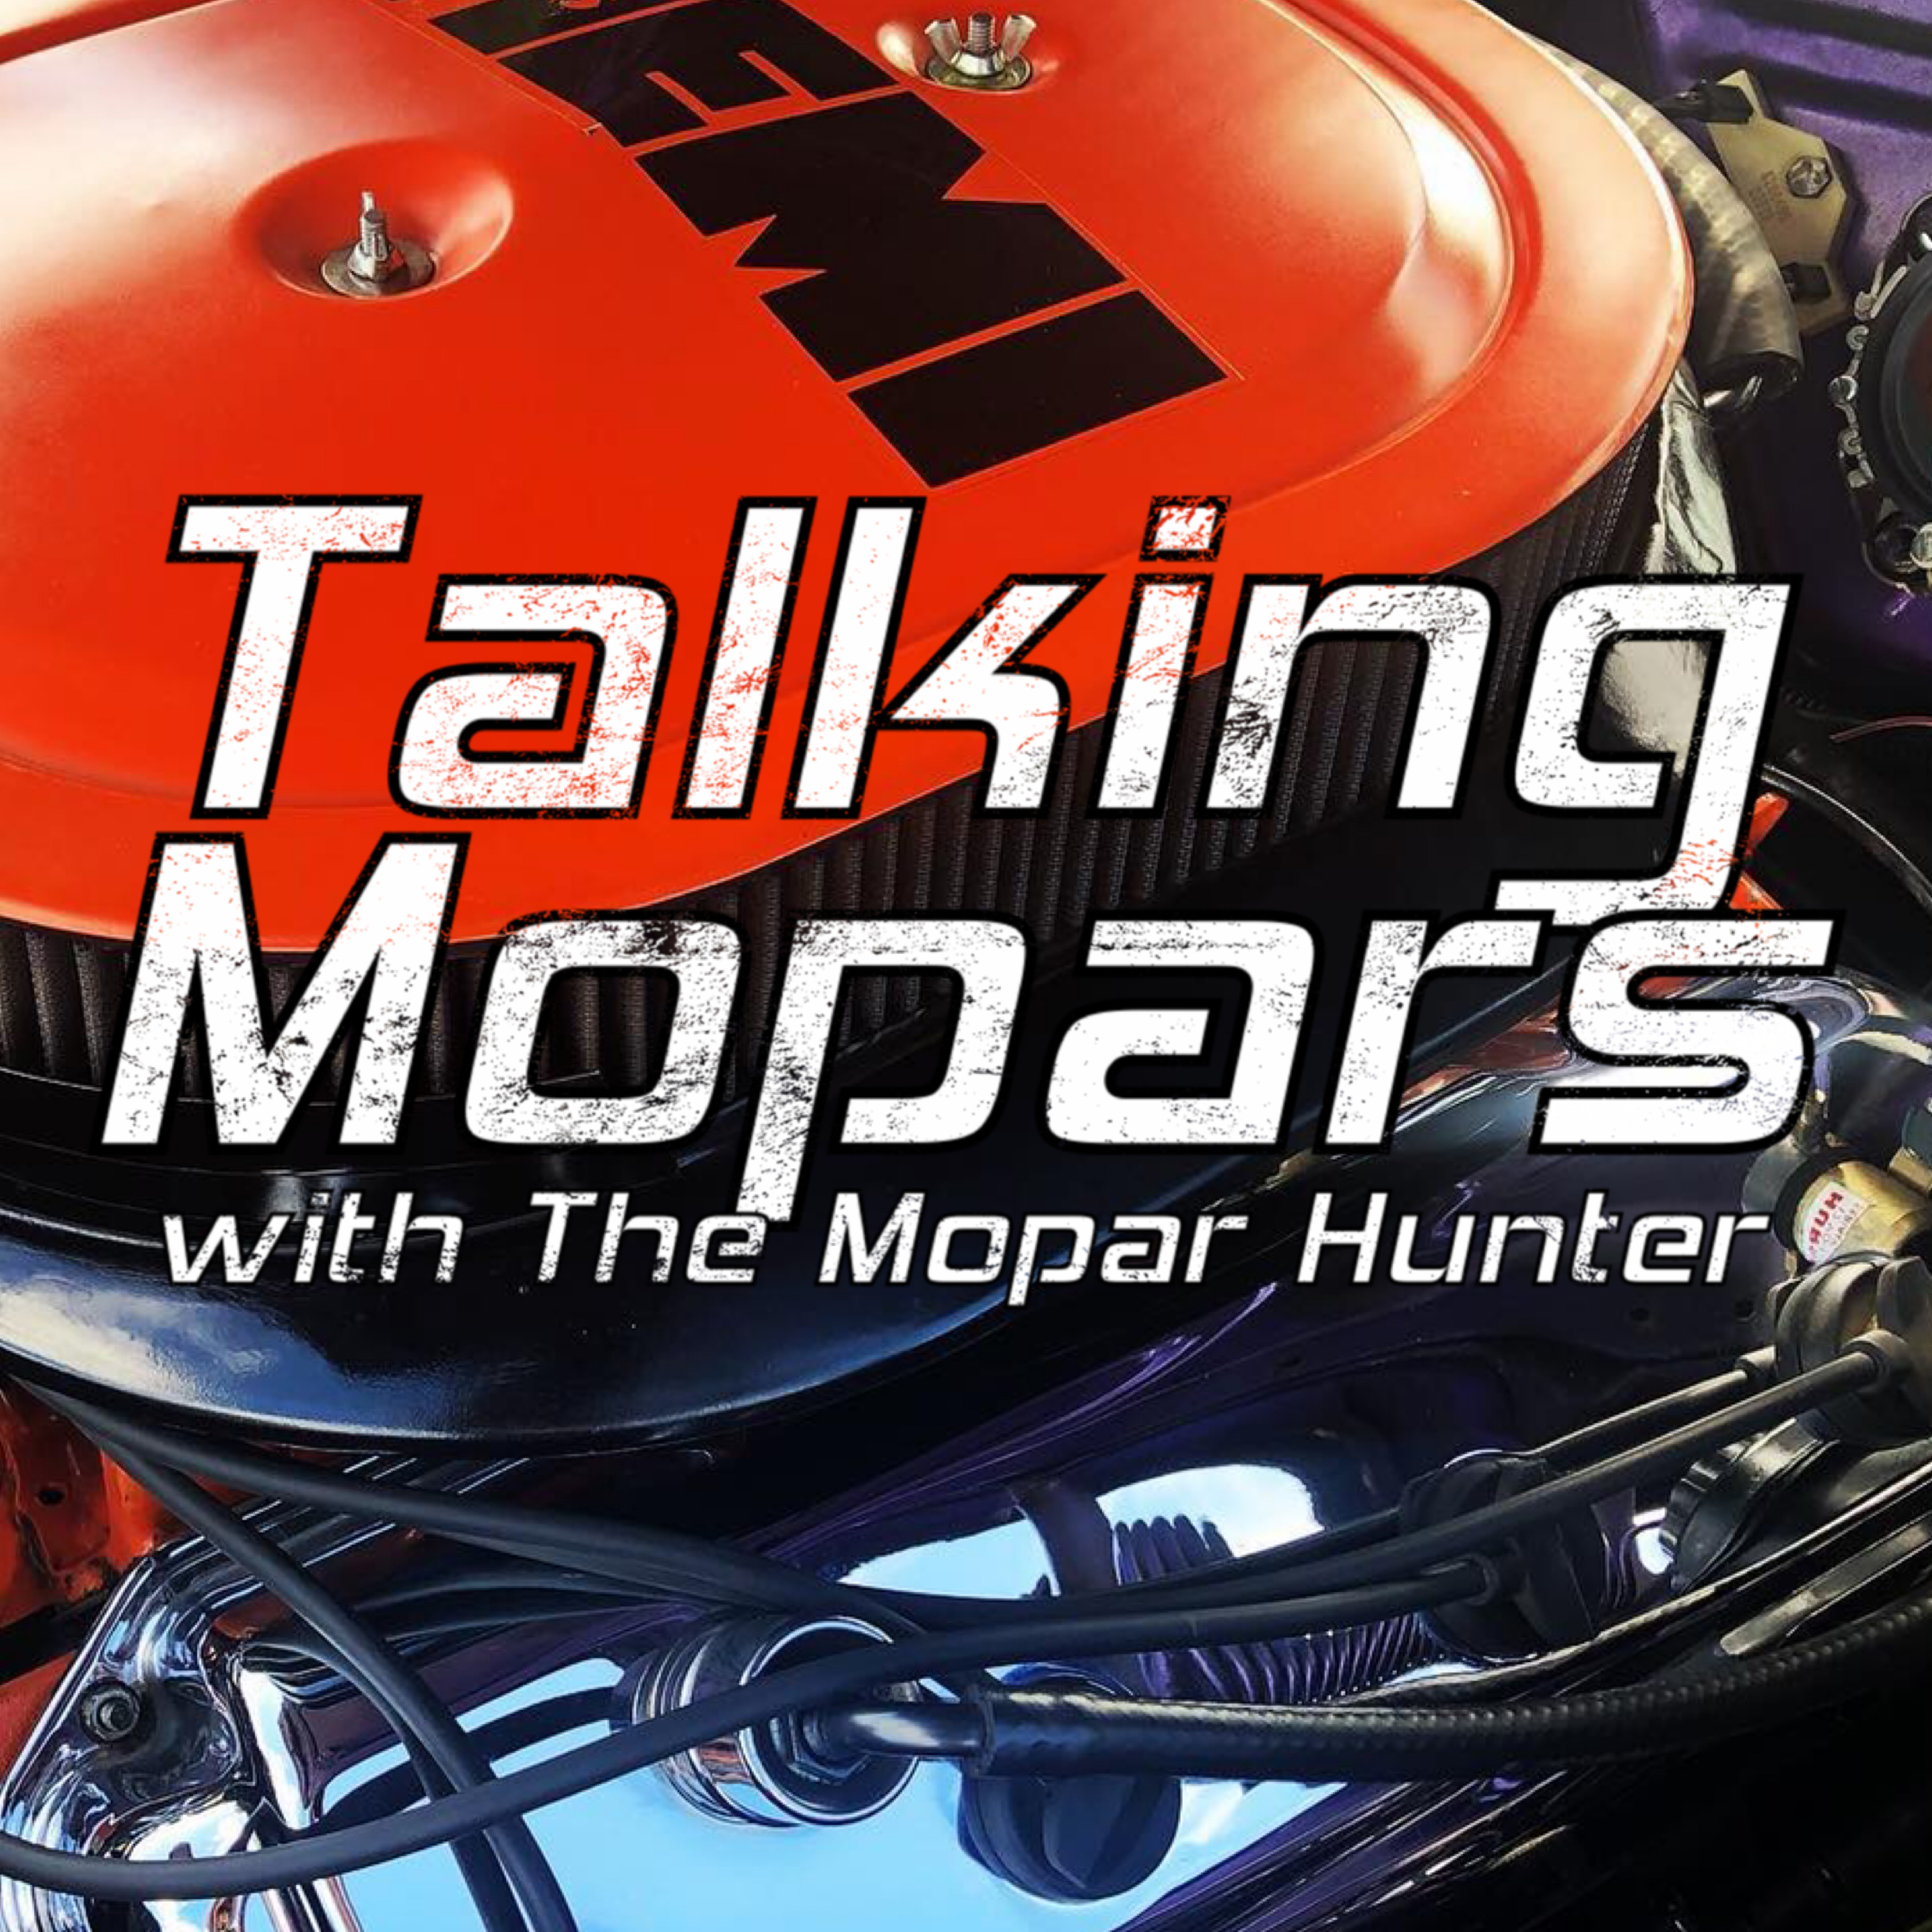 A highlight from Episode 101: Monday Night LIVE w/ The Mopar Hunter